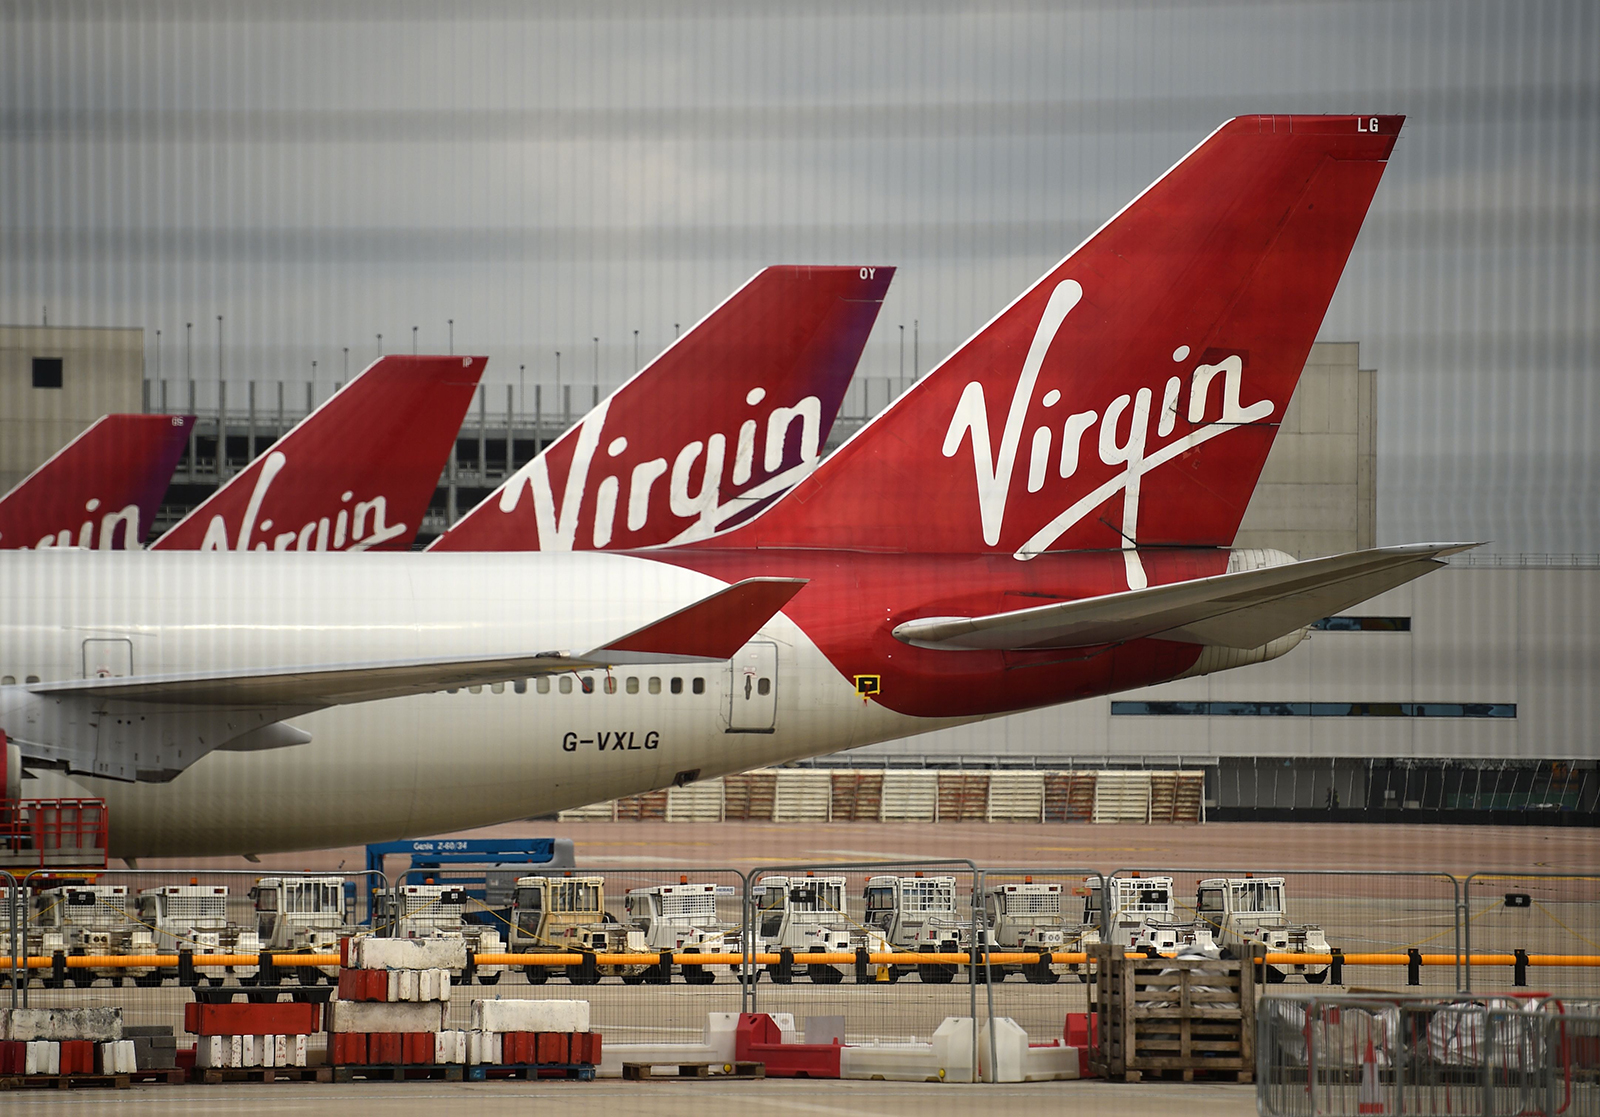 Virgin Atlantic Airline planes are pictured at the apron at Manchester airport in northwest England, on June 8.